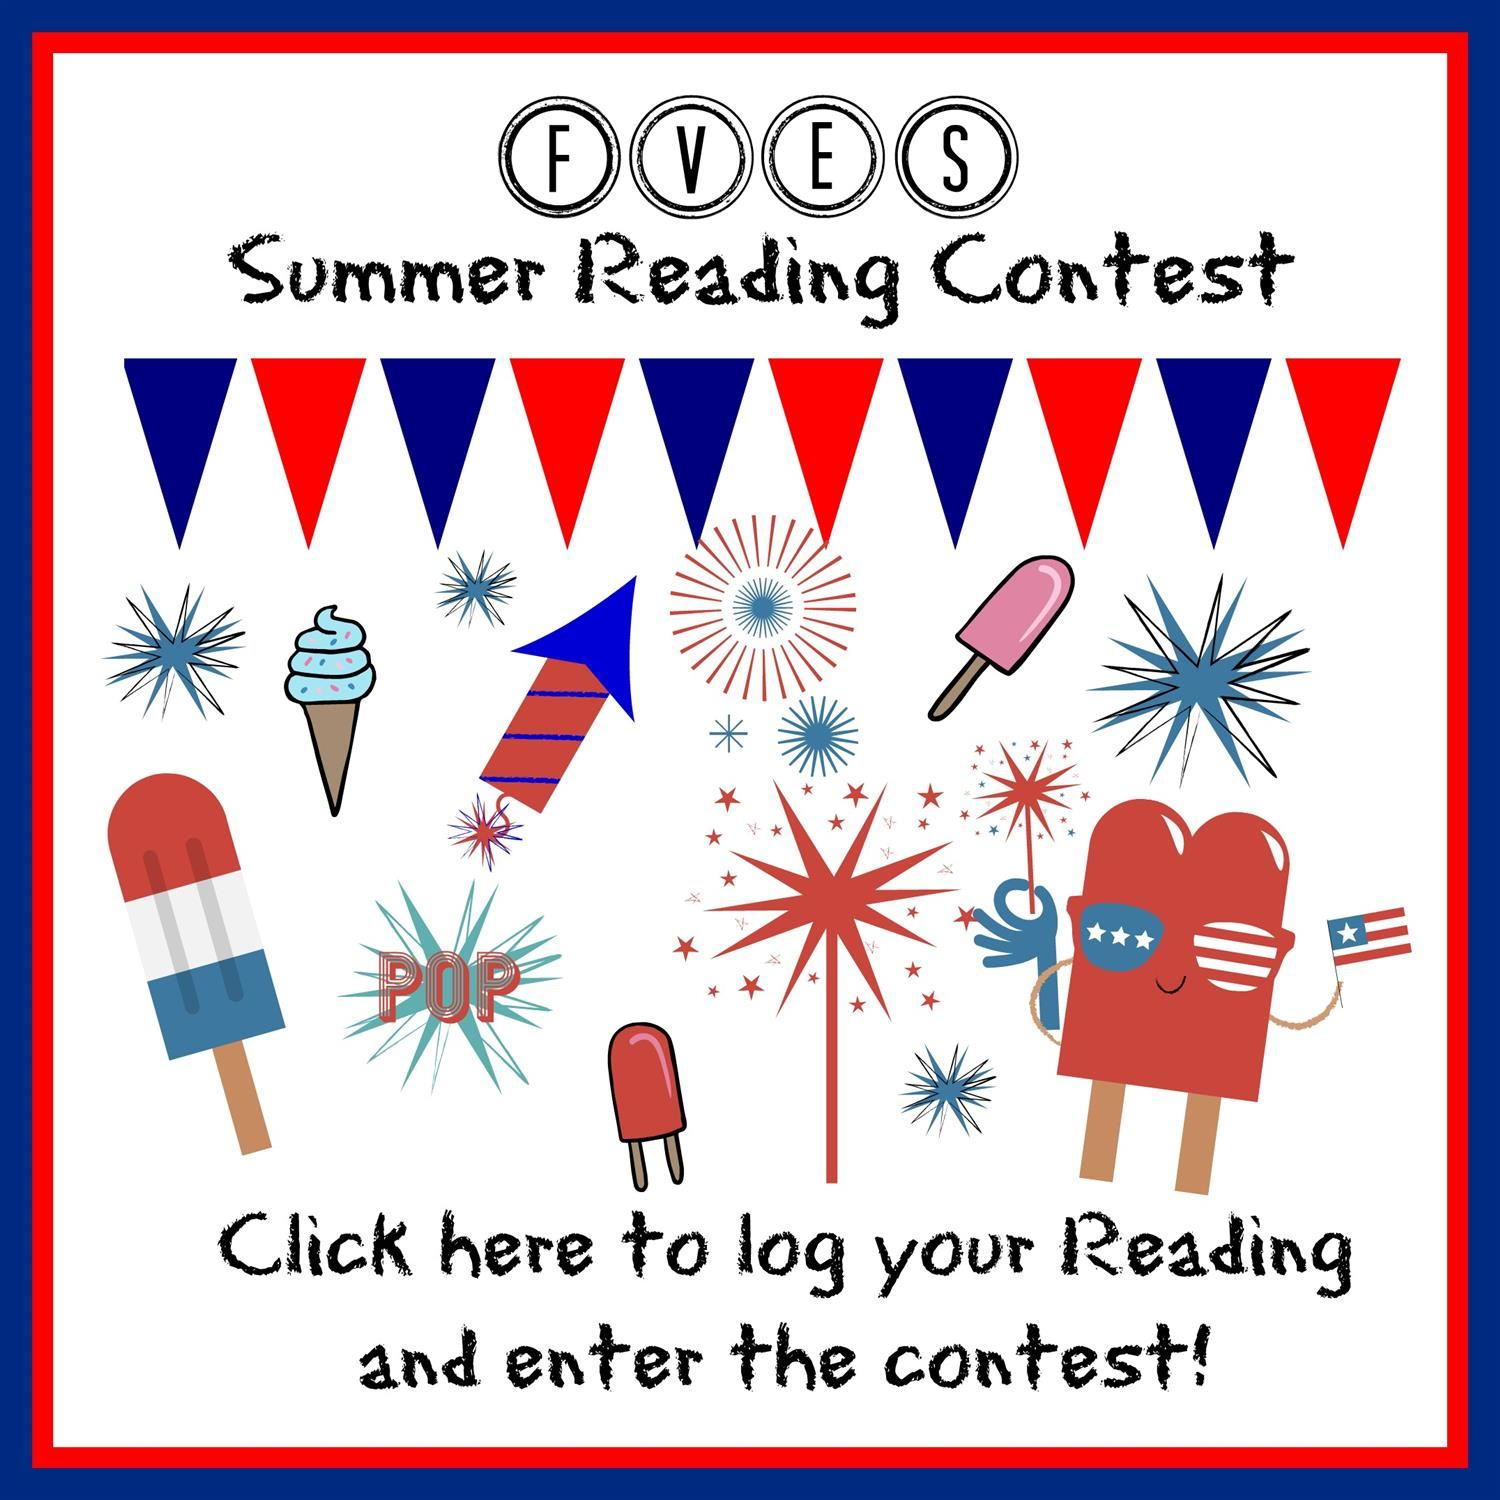 2018 Summer Reading Contest